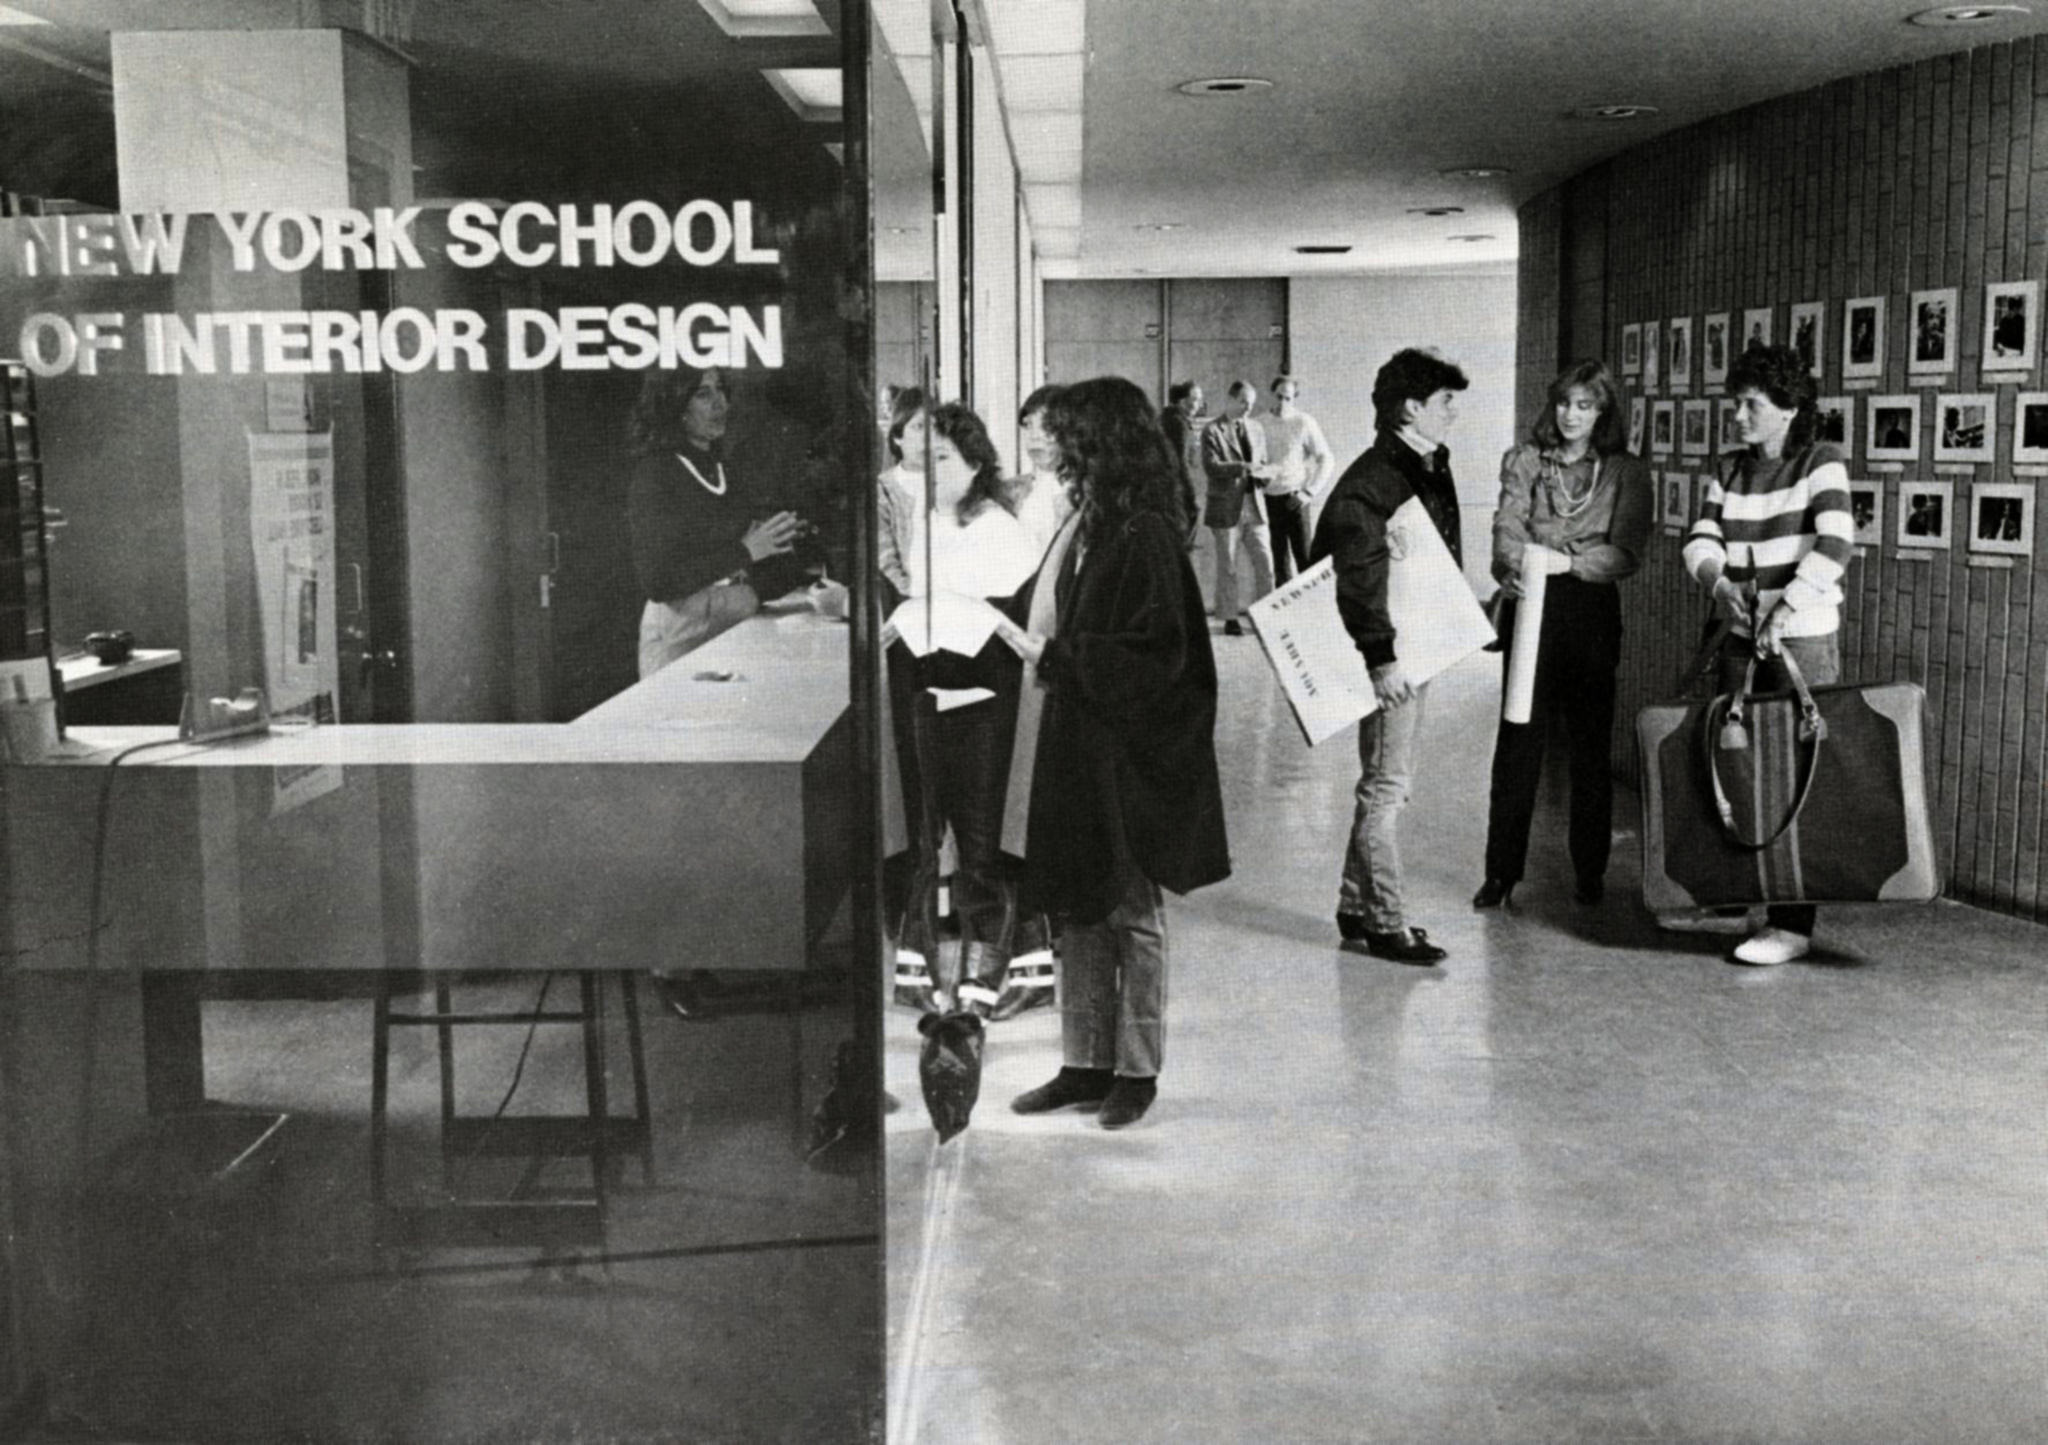 Students socializing in the lobby of 155 East 56 Street, 1984